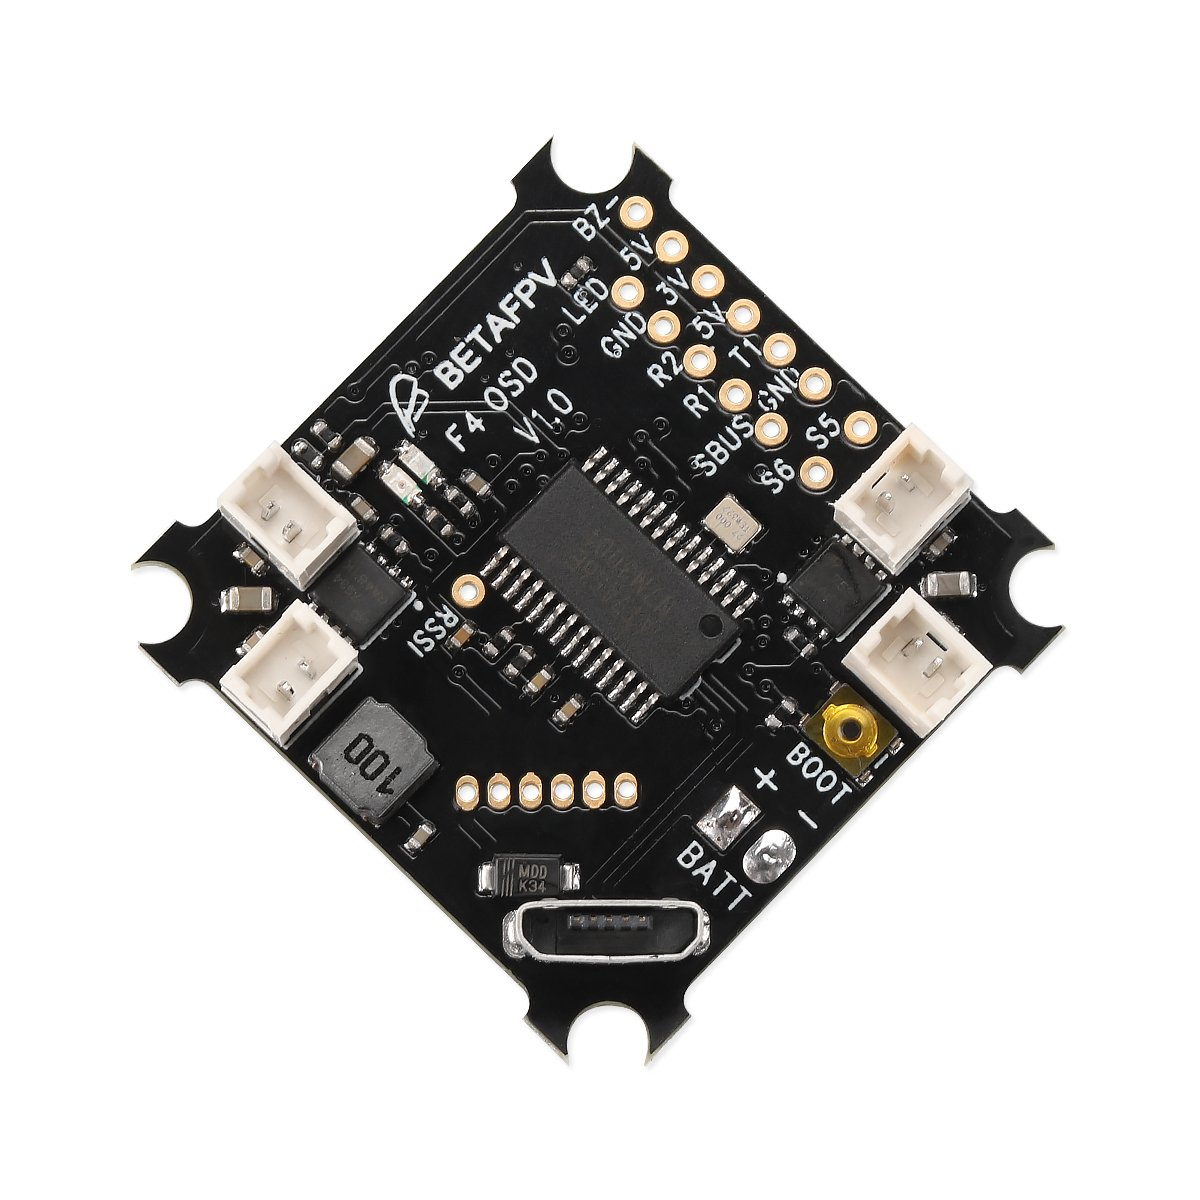 Beta FPV F4 Brushed Flight Controller